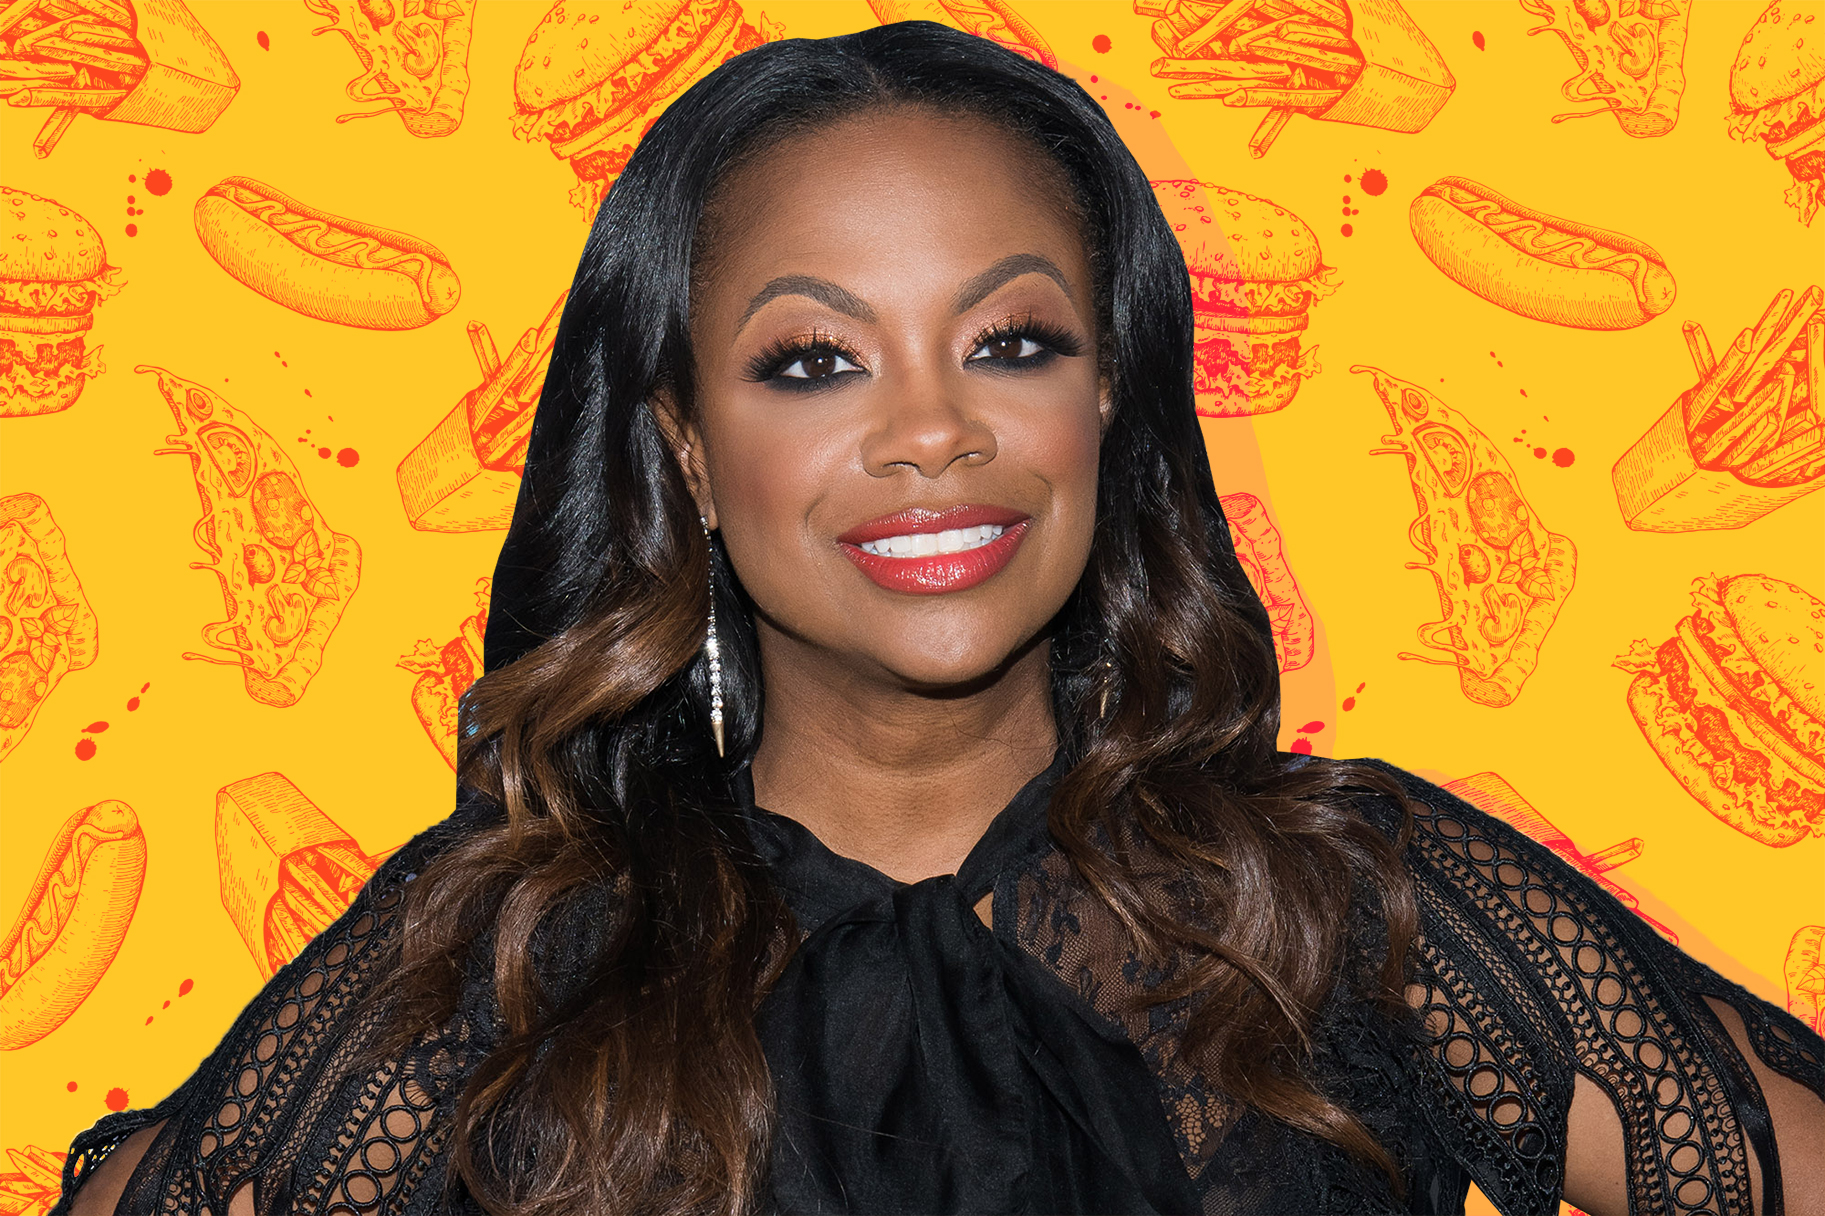 Kandi Burruss Shares Photos From Her Old Lady Gang Camp Creek Opening: NeNe Leakes, Rasheeda & Kirk Frost, Cynthia Bailey And More Were Invited